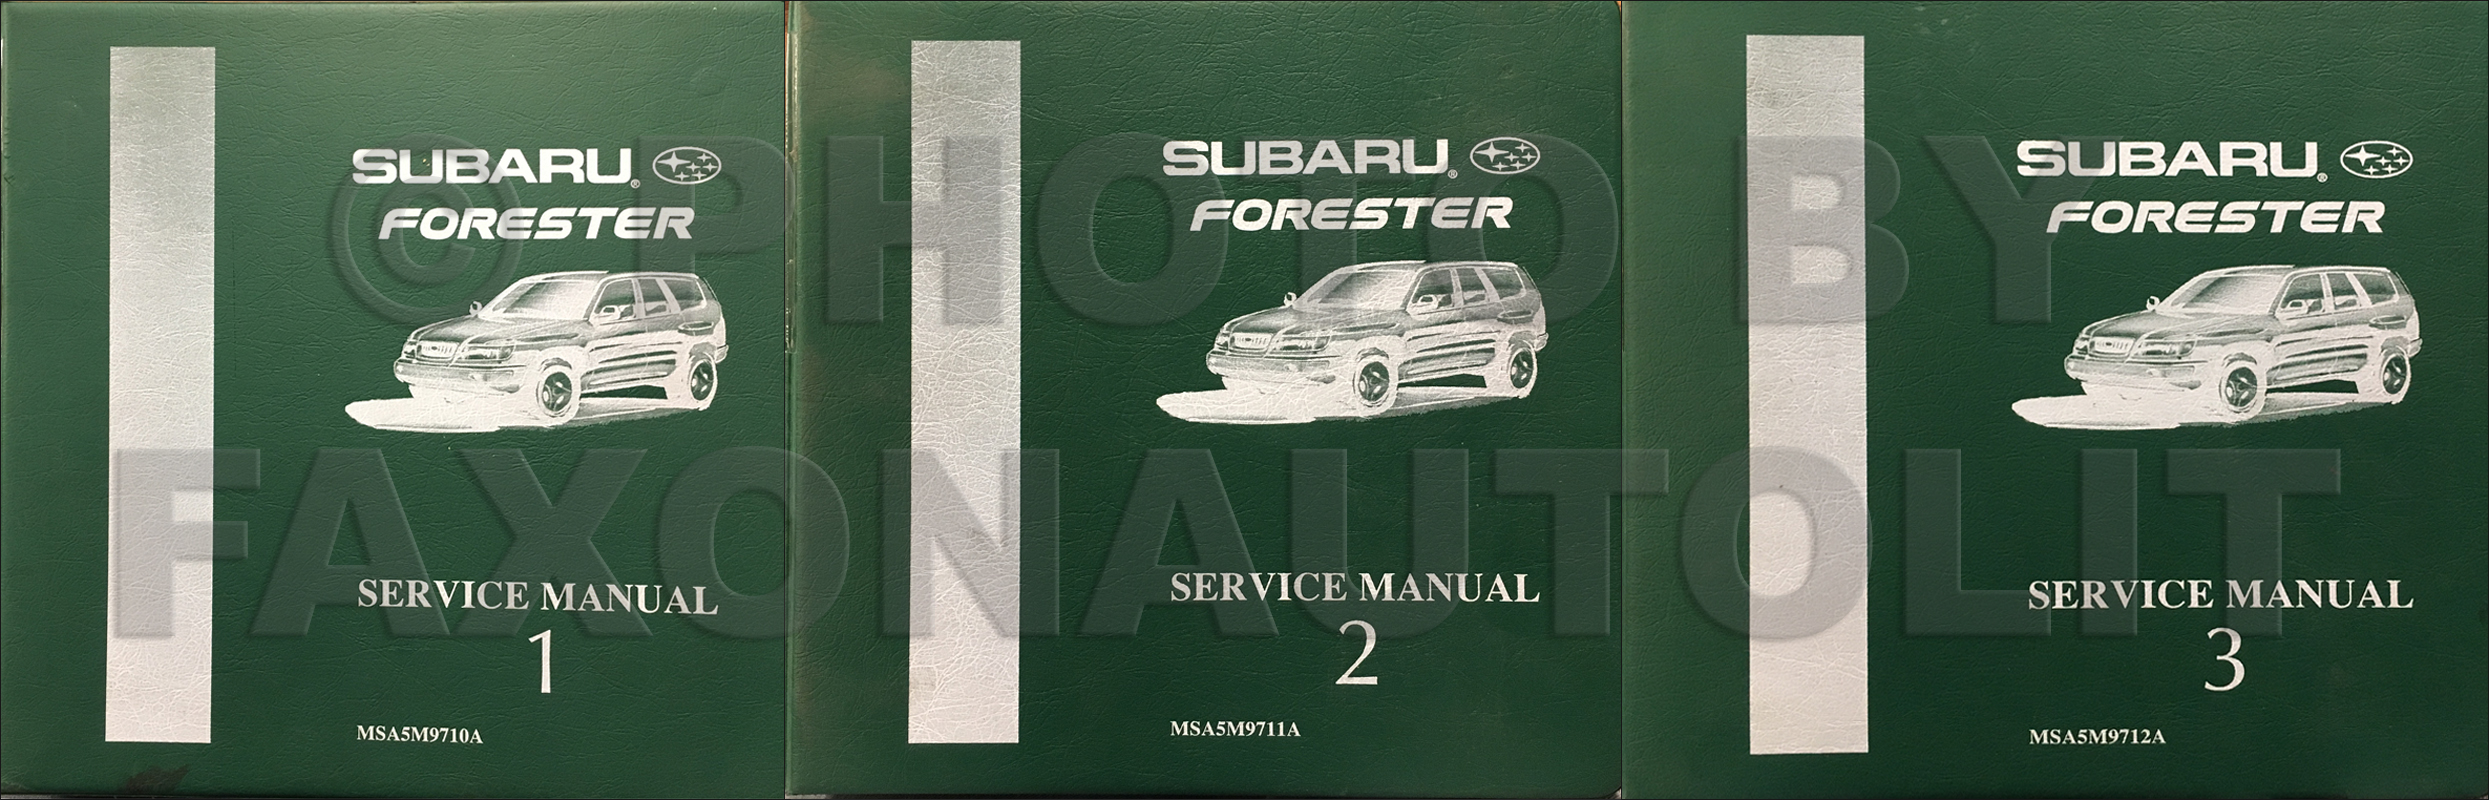 1998 Subaru Forester Repair Shop Manual Original 3 Volume Set $189.00